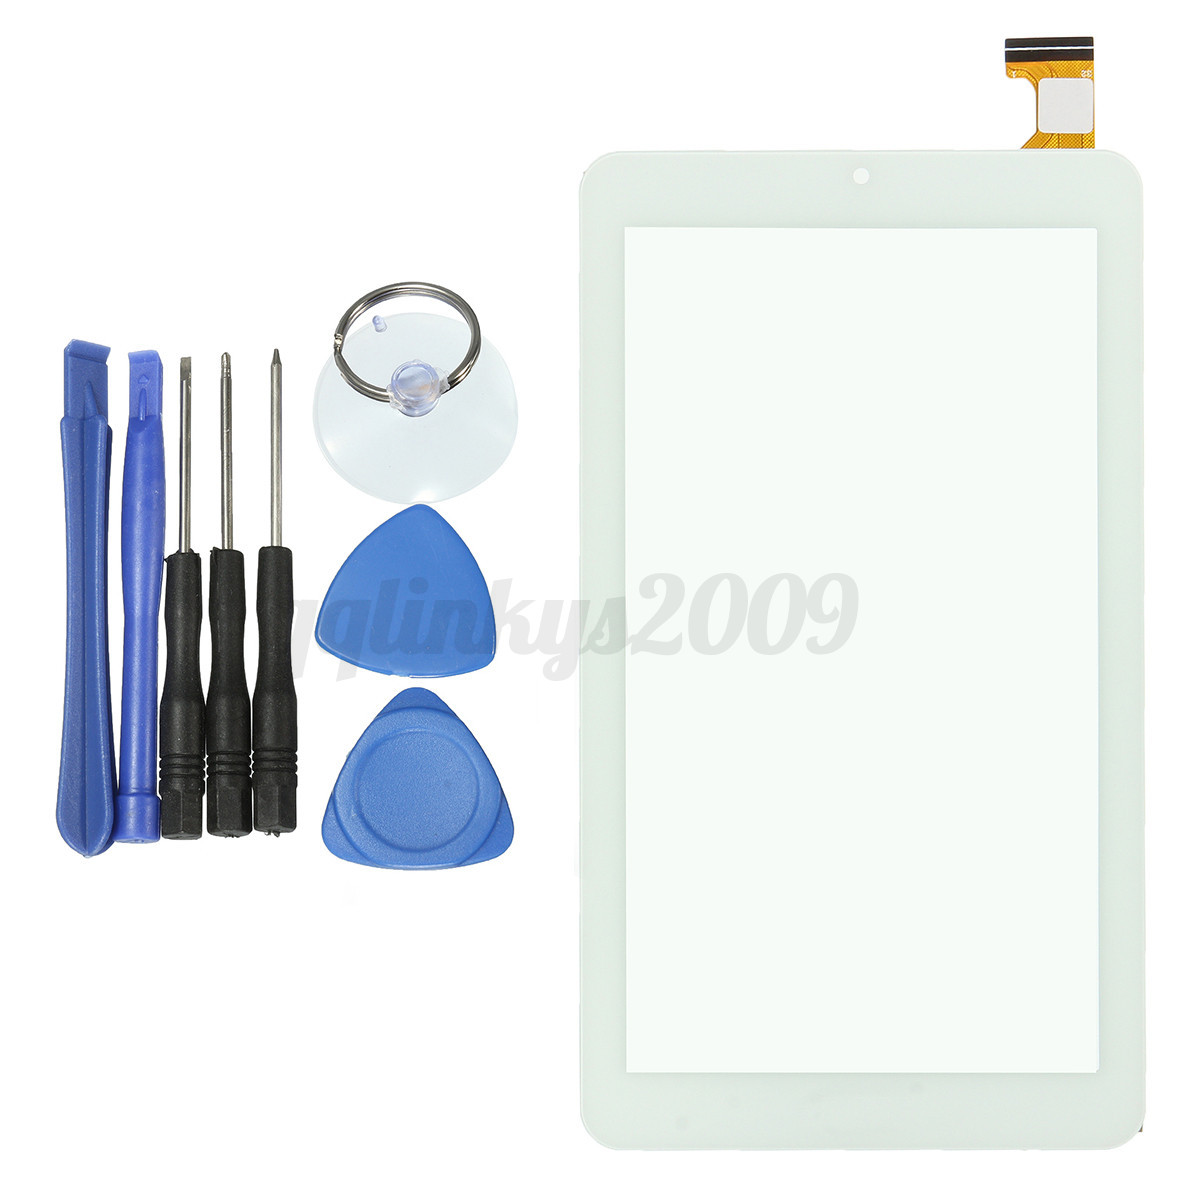 Touch-Screen-Digitizer-Glass-Repair-For-Acer-Iconia-One-7-B1-770-7-039-039-W-Tool-New